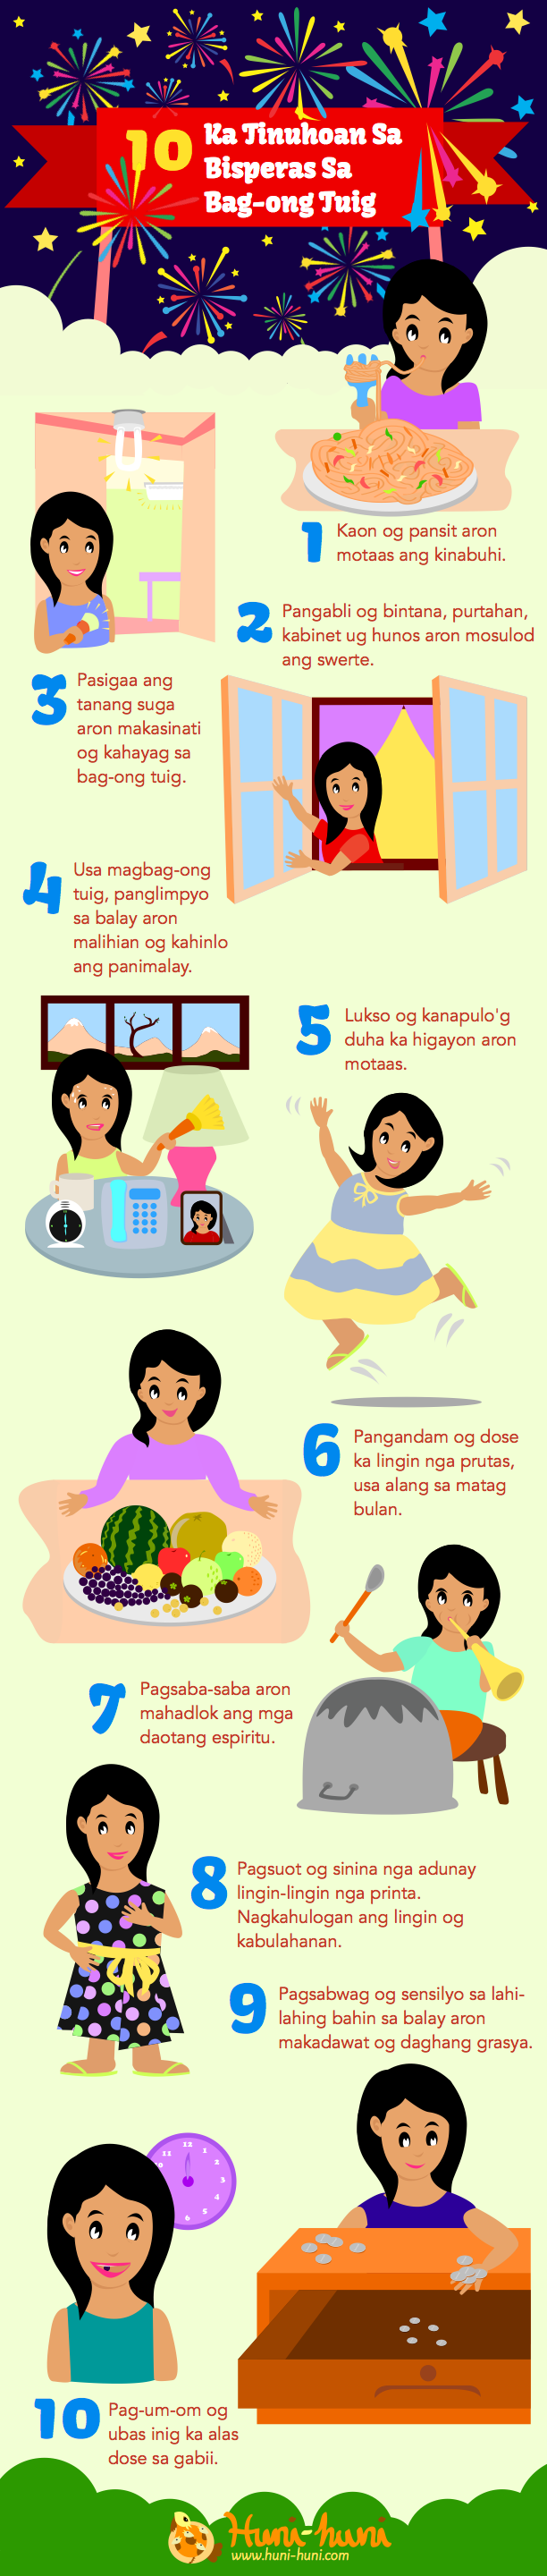 Infographic - New Year's Eve Superstitions in the Philippines